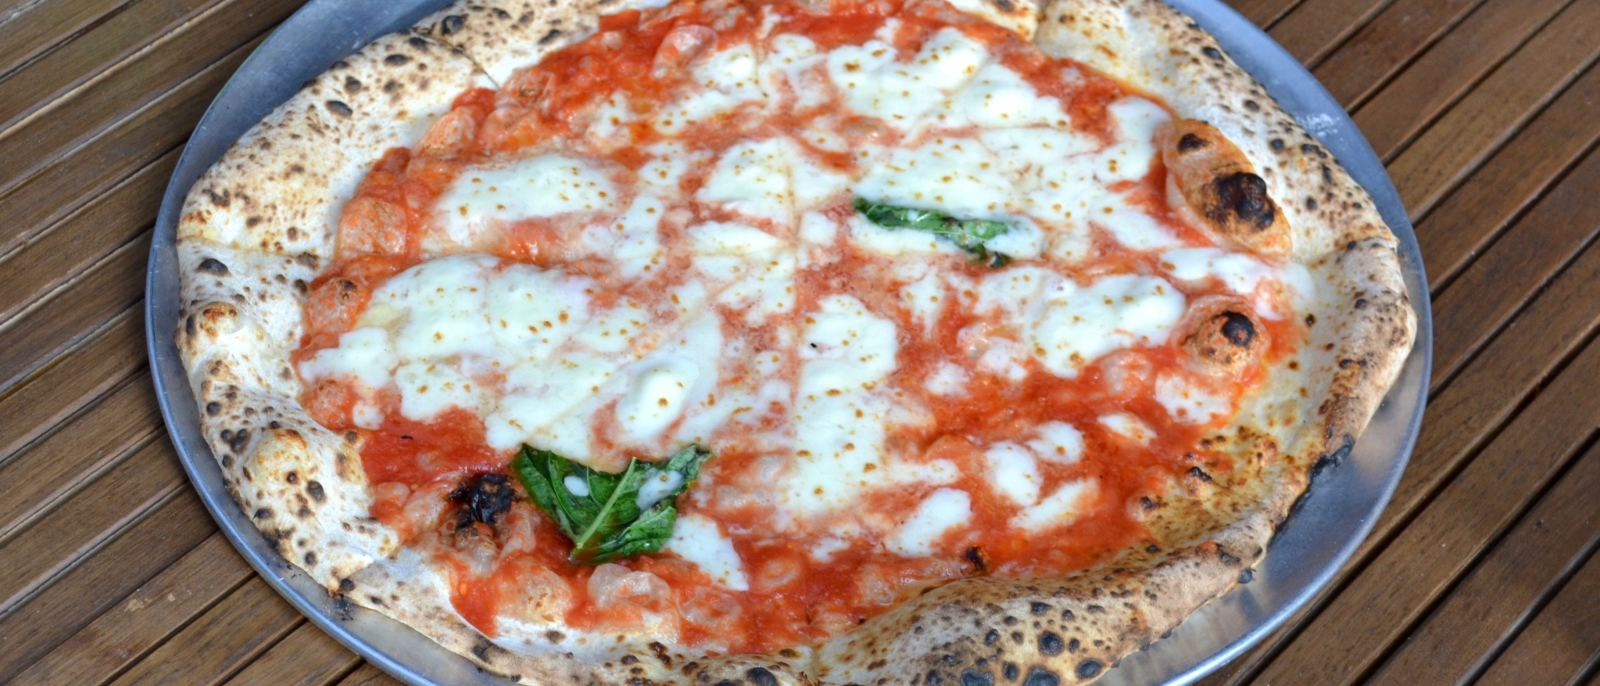 Margherita Pizza at L'Antica Pizzeria da Michele in Hollywood